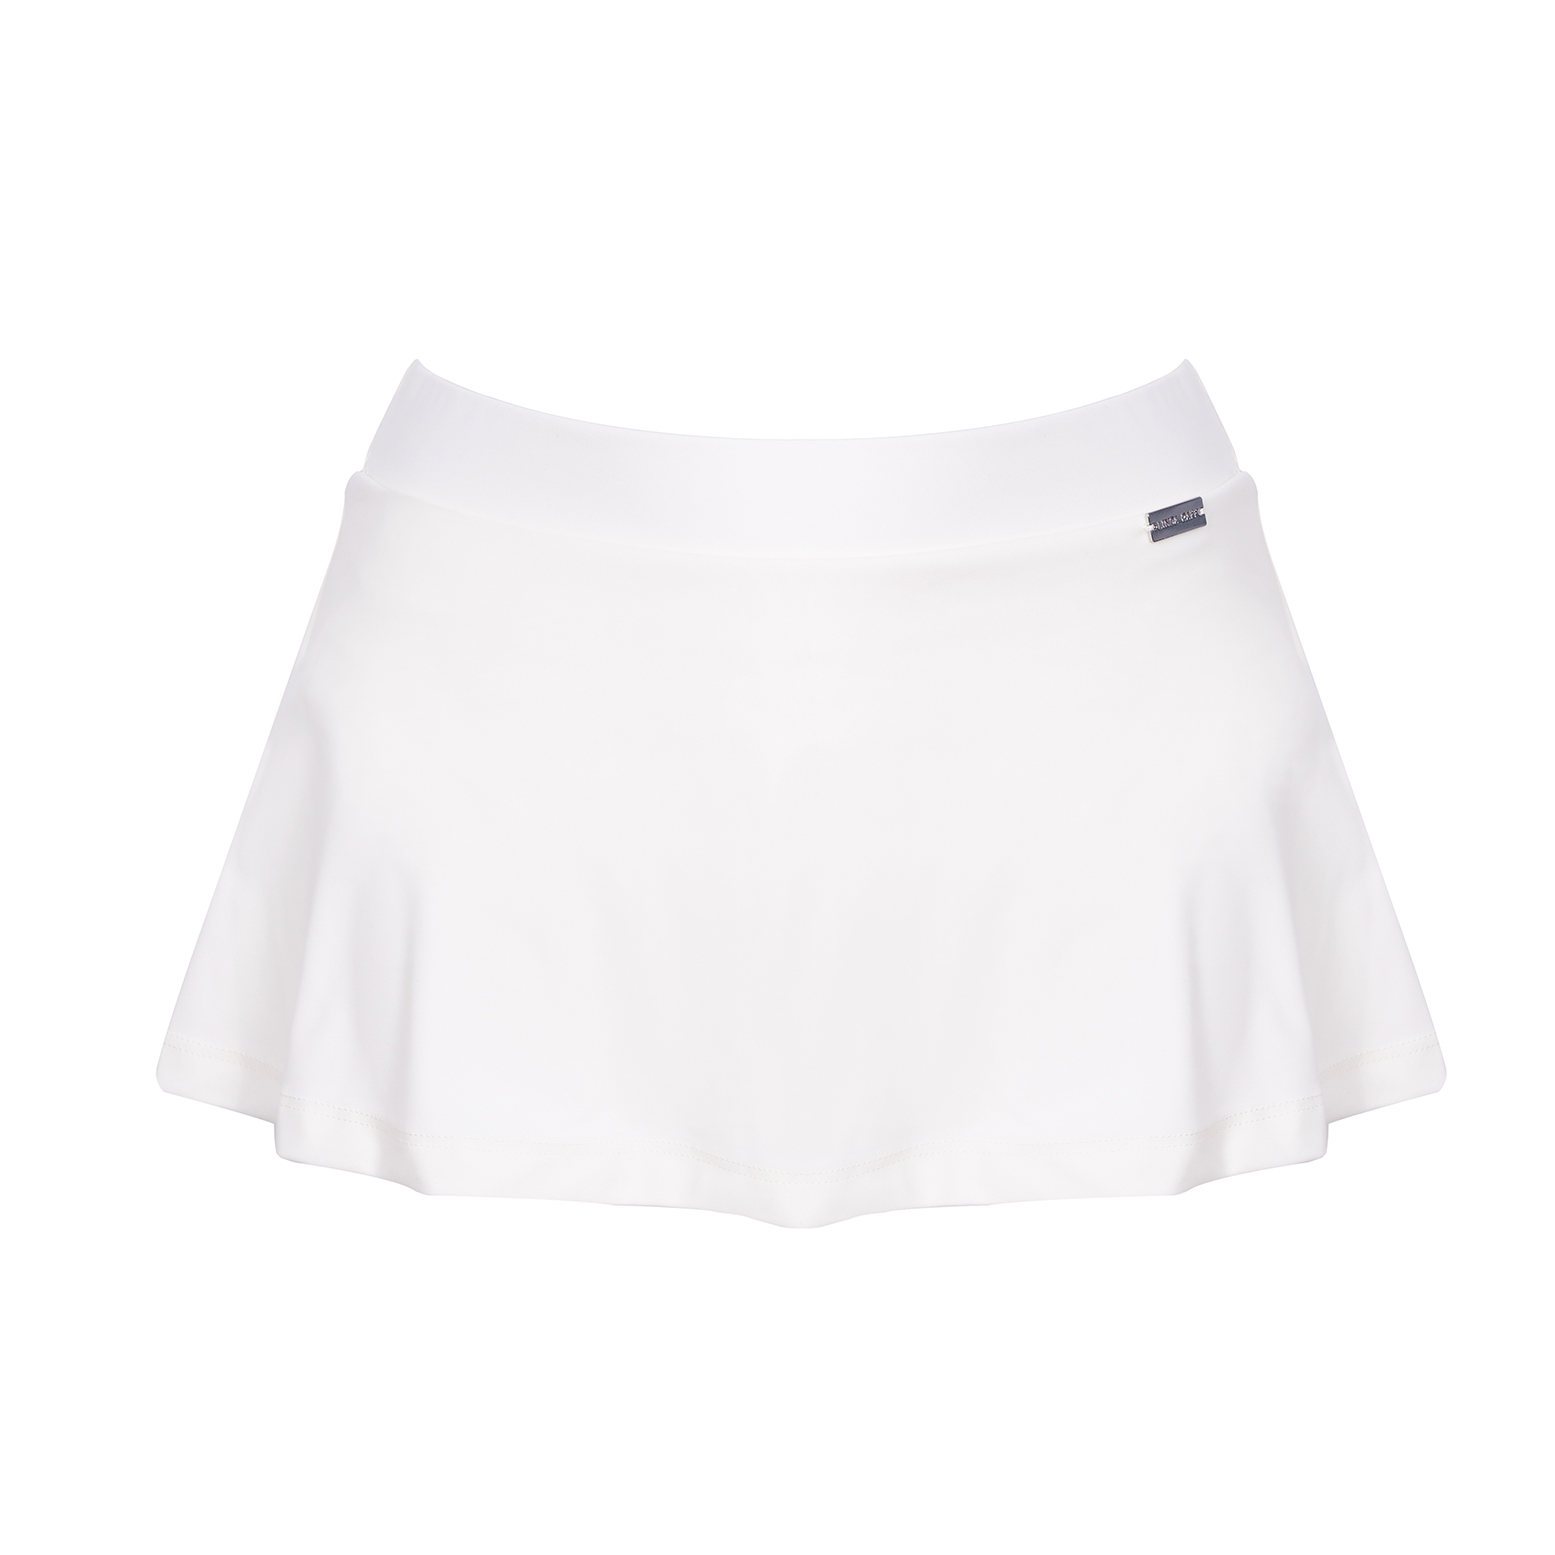 Linda Raff Collection -SLIP SKIRT ECO AVORIO